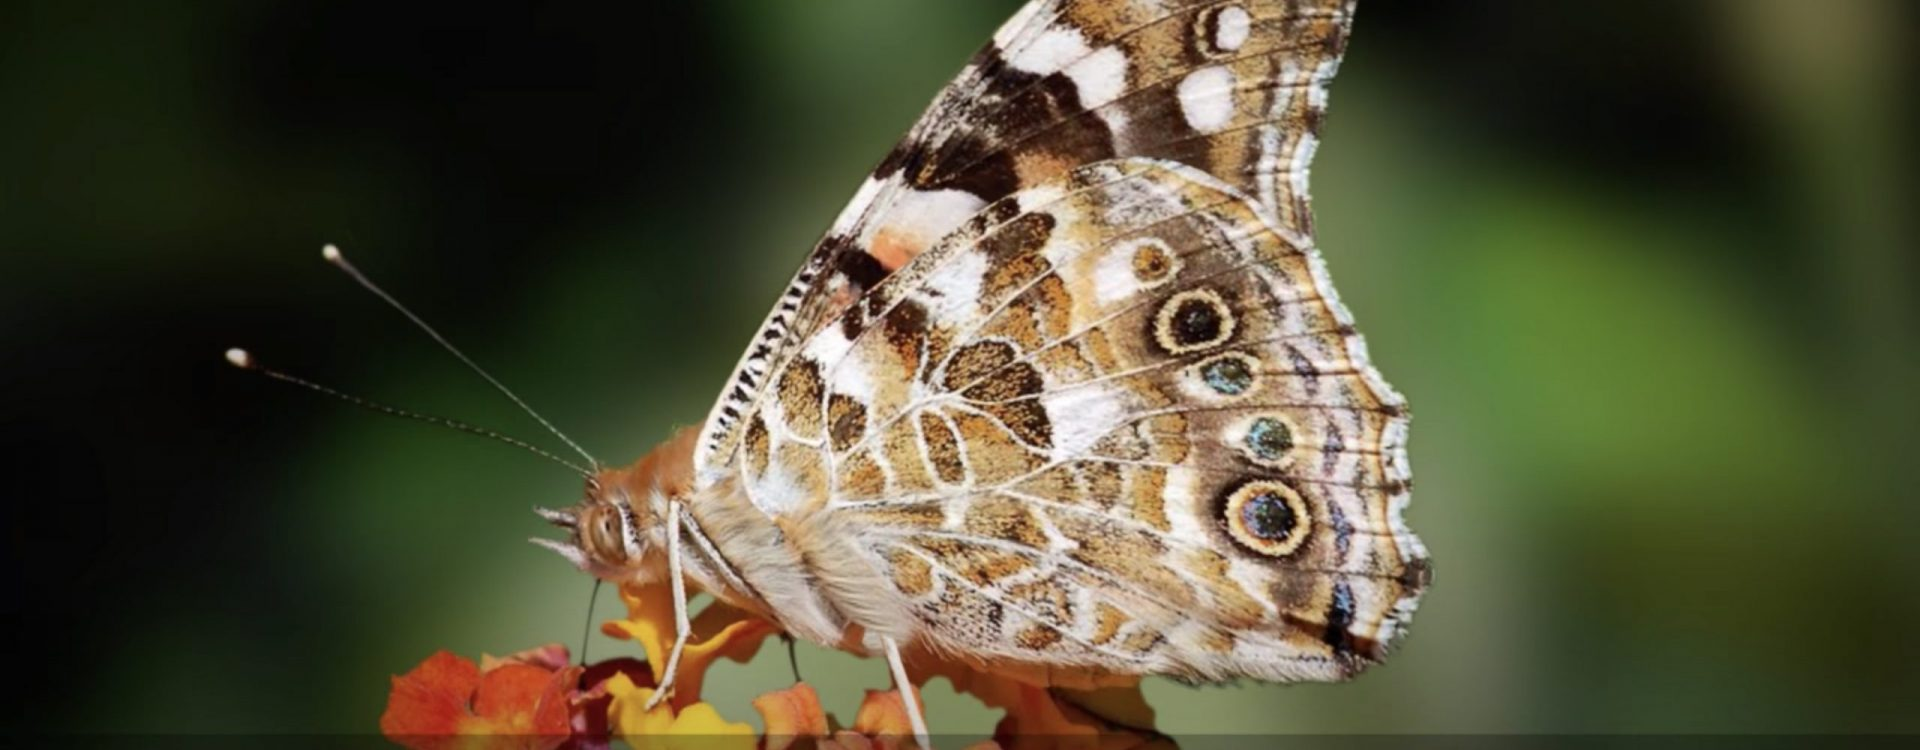 Vanessa's Odyssey, Tribute to the butterfly Vanessa Cardui and her incredible journey (Outreach video)